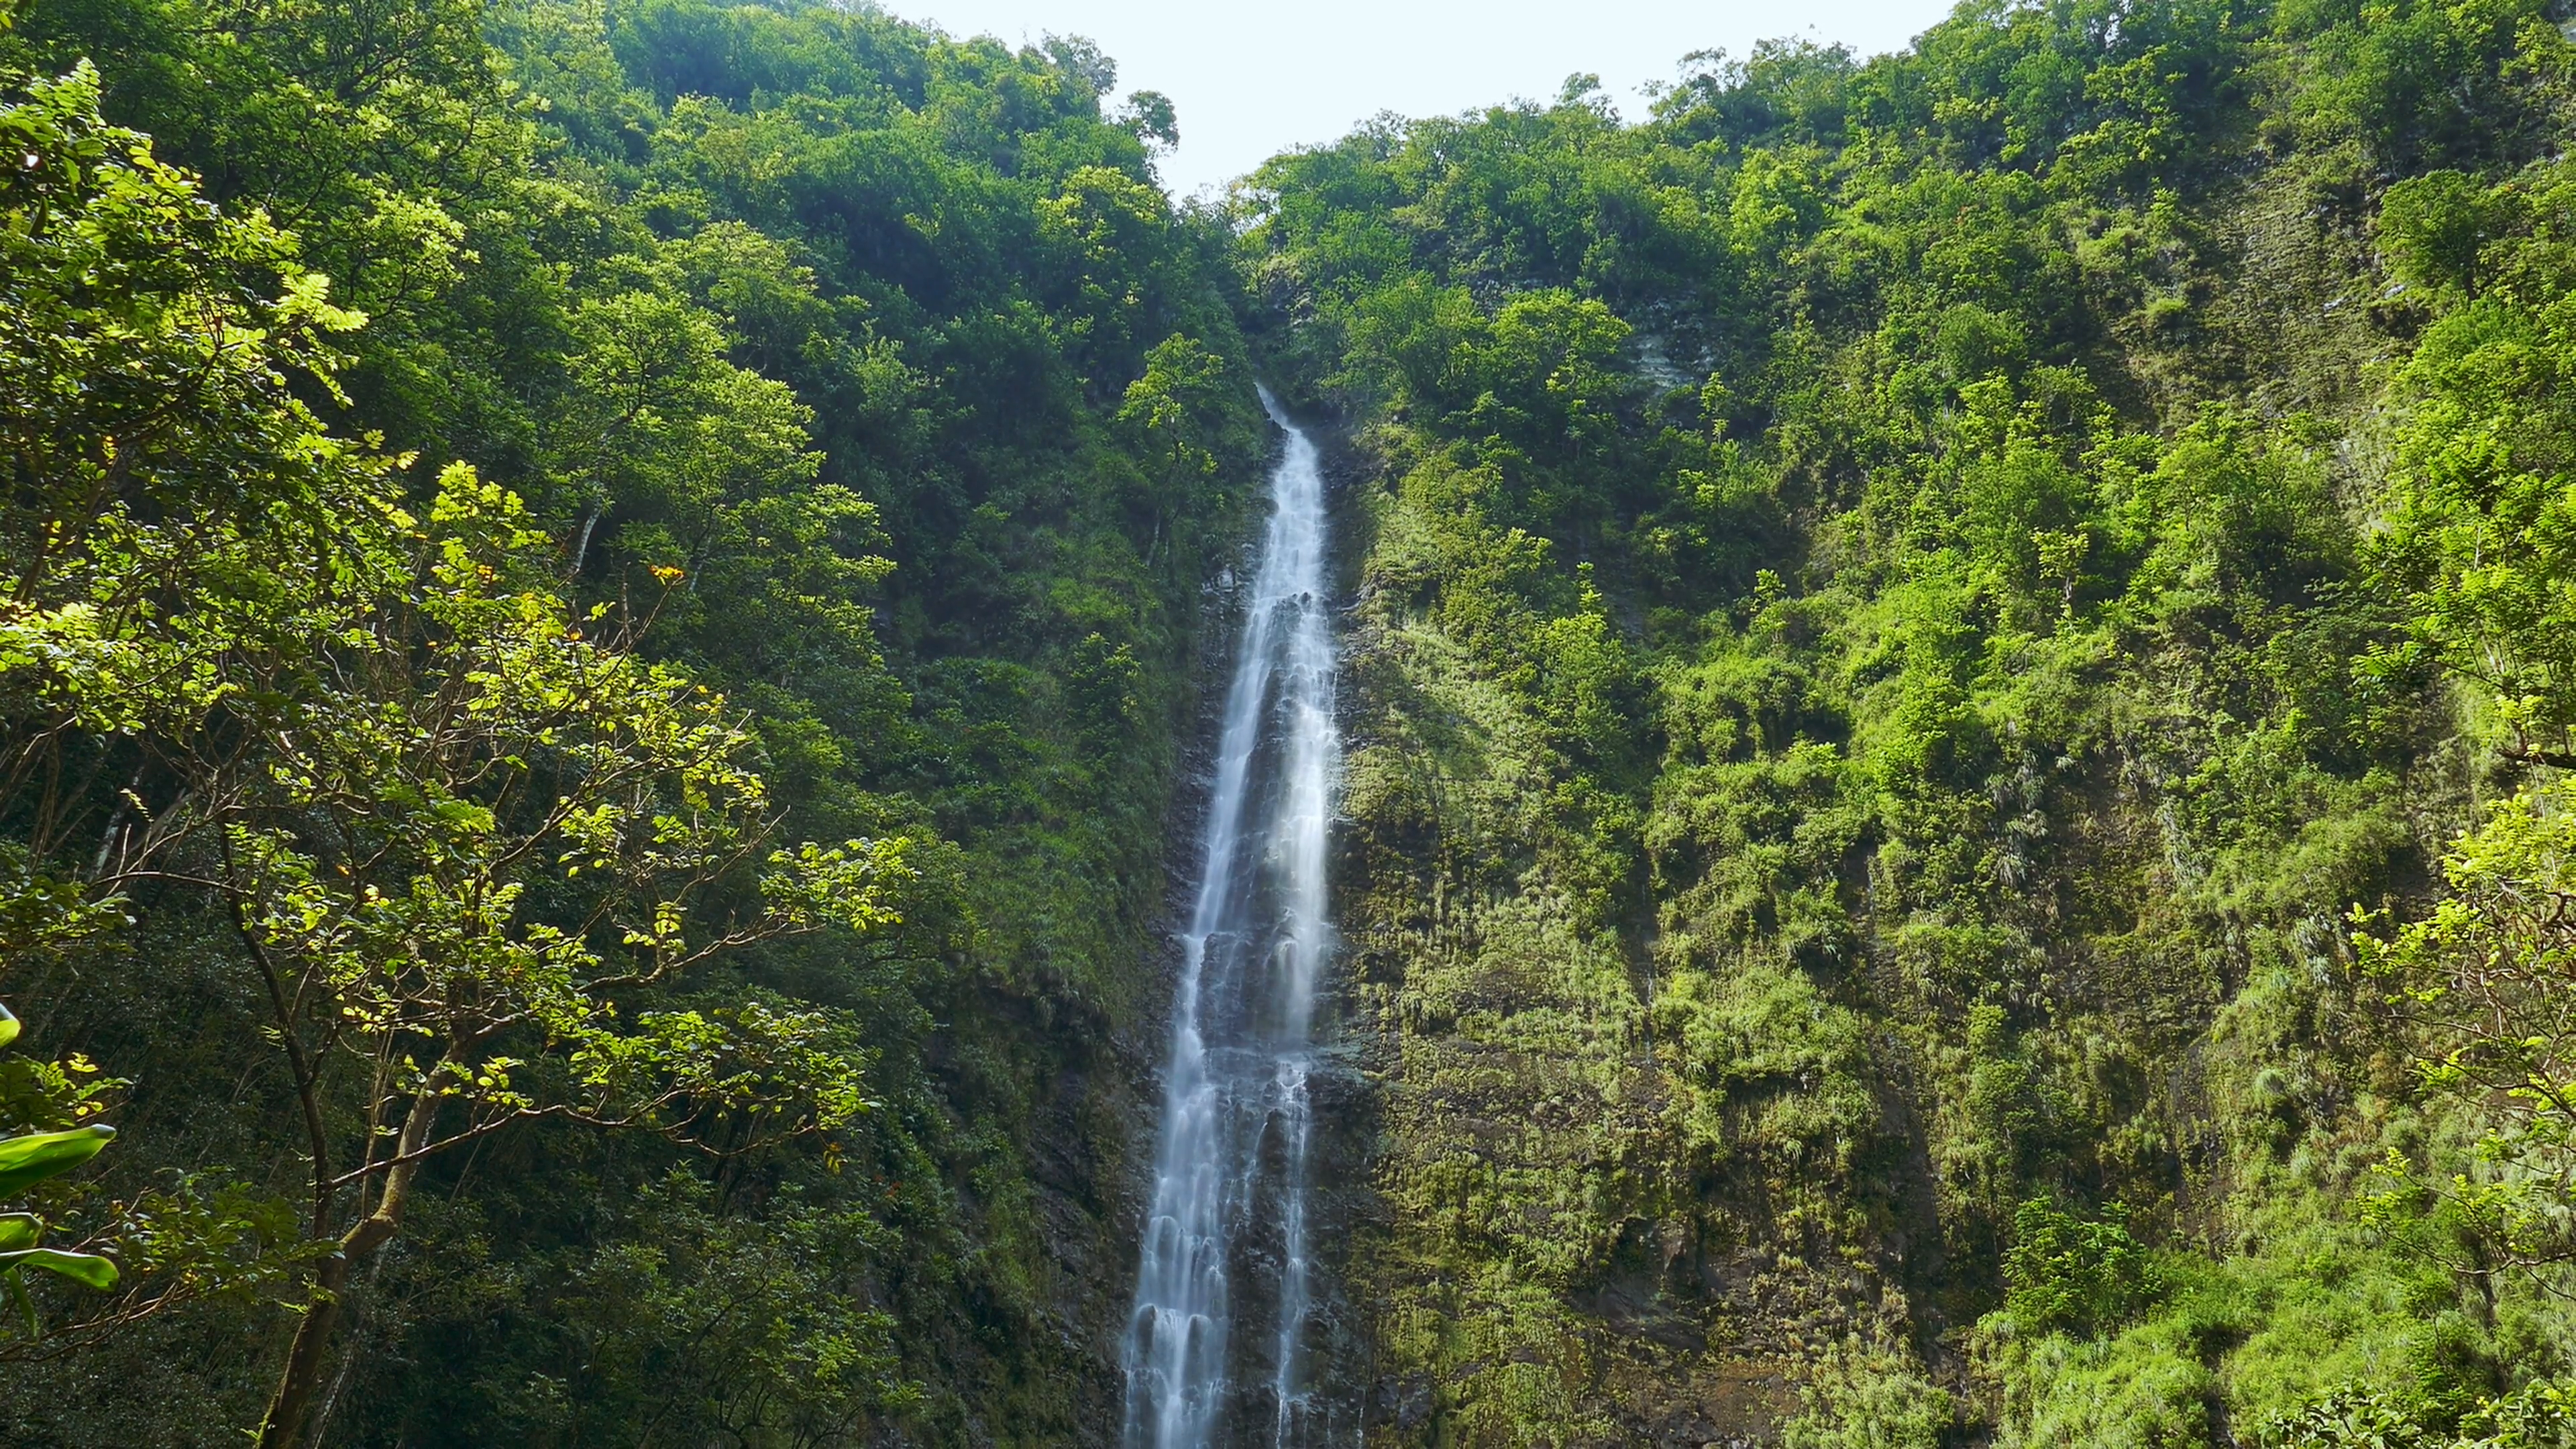 Waterfall Forest Footage Hawaii Green Lush Foliage Travel Nature ...